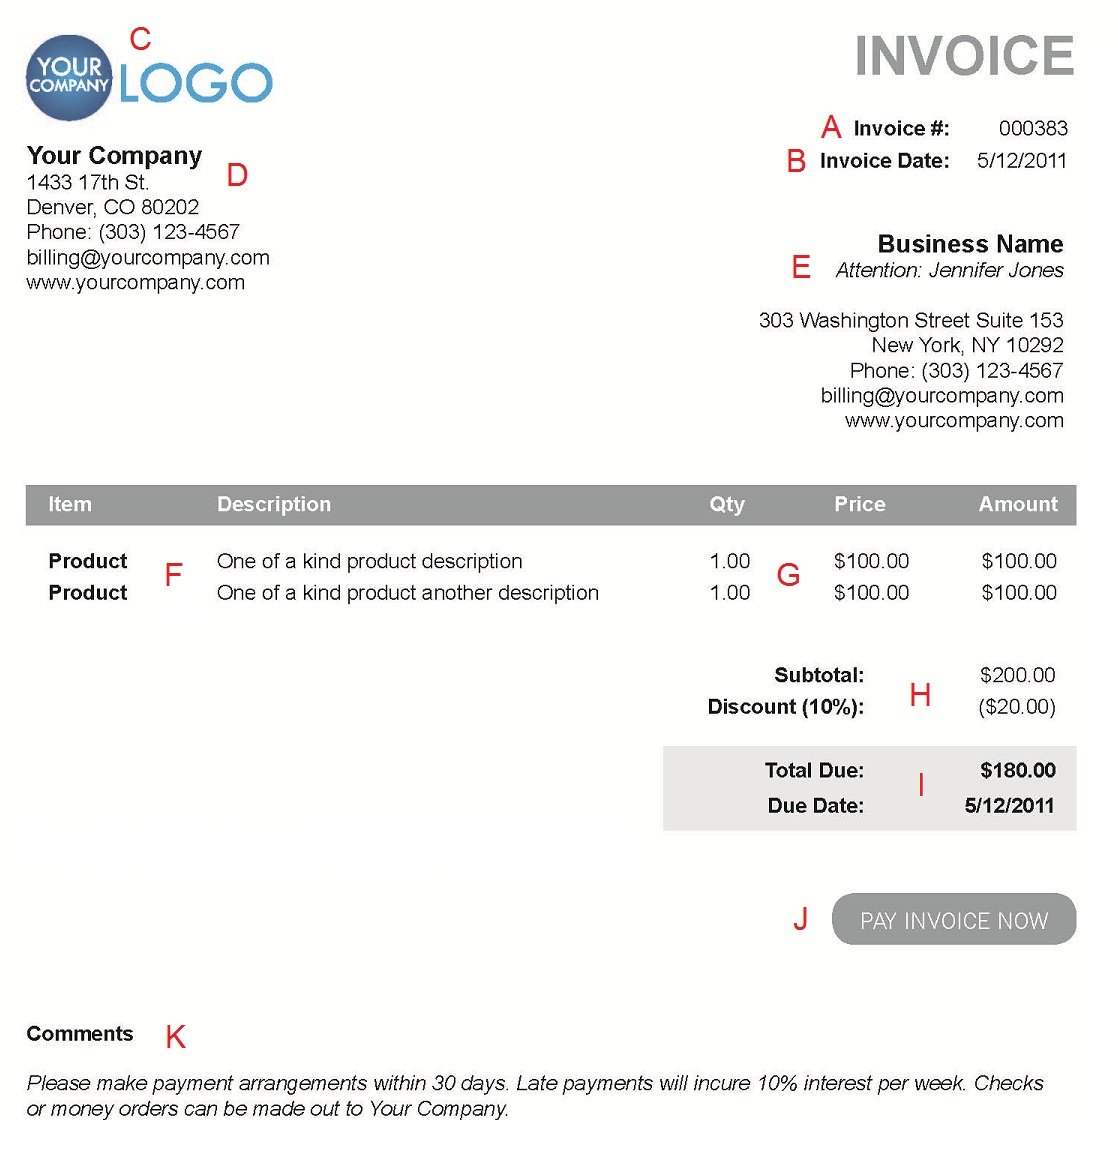 Centralasianshepherdus  Ravishing The  Different Sections Of An Electronic Payment Invoice With Exquisite A  With Agreeable Trucking Invoices Also Pro Forma Invoice Fedex In Addition Paid Invoices And Simple Invoice Example As Well As Invoice And Billing Software Additionally Magento Invoice Template From Paysimplecom With Centralasianshepherdus  Exquisite The  Different Sections Of An Electronic Payment Invoice With Agreeable A  And Ravishing Trucking Invoices Also Pro Forma Invoice Fedex In Addition Paid Invoices From Paysimplecom